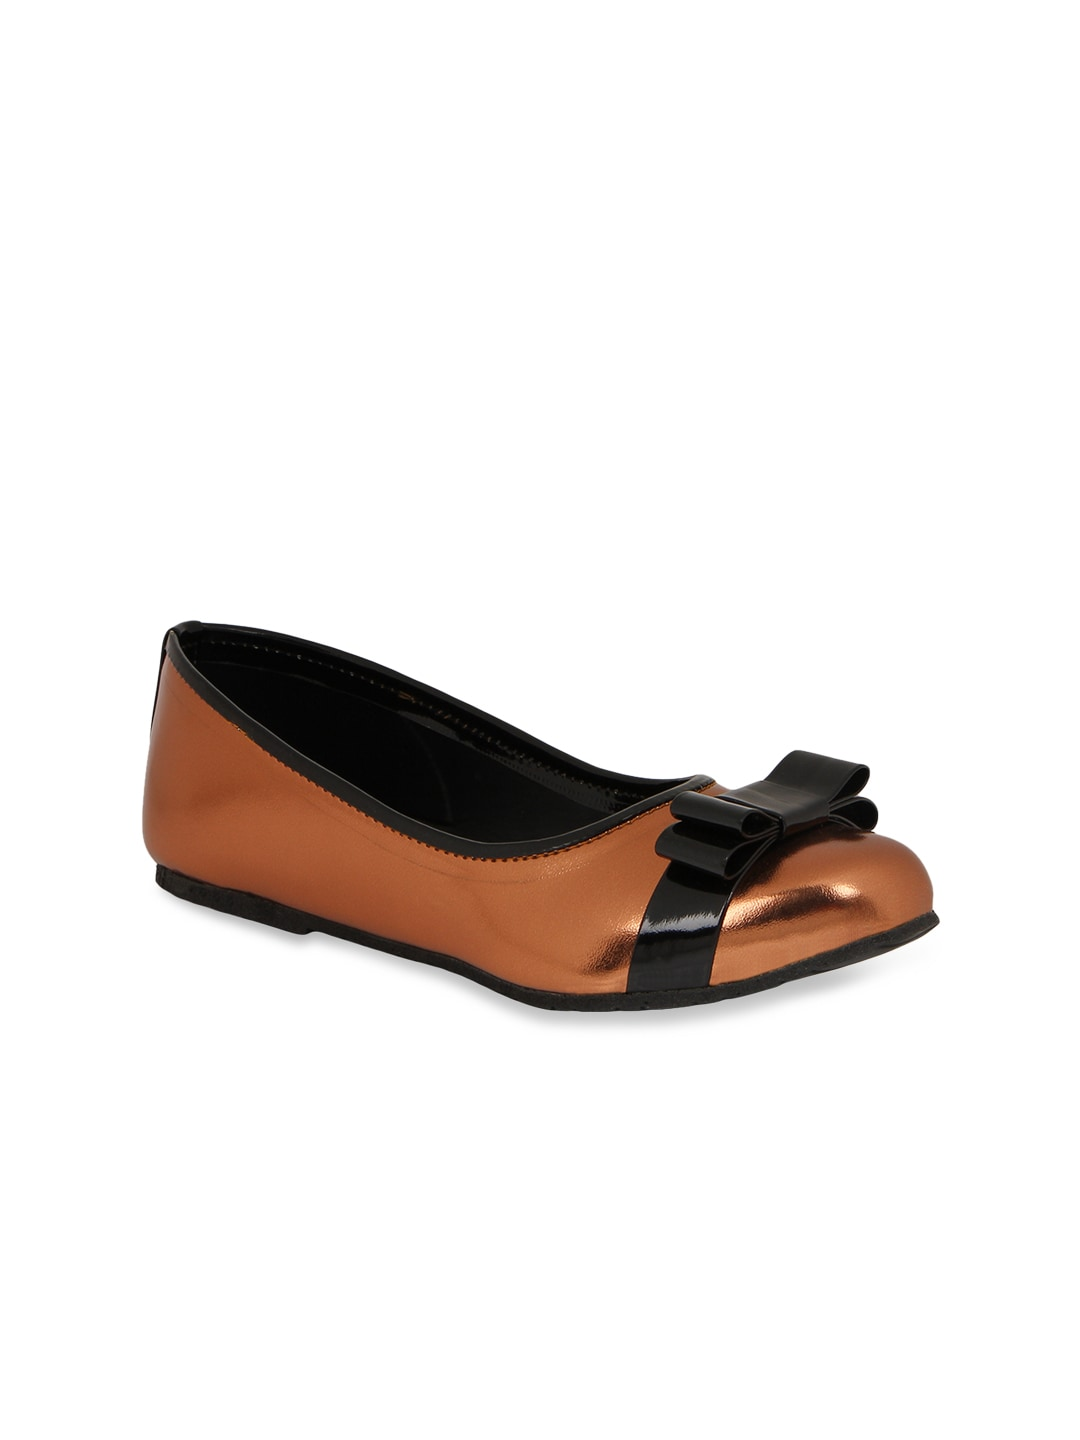 Chalk Studio Women Bronze-Toned Ballerinas